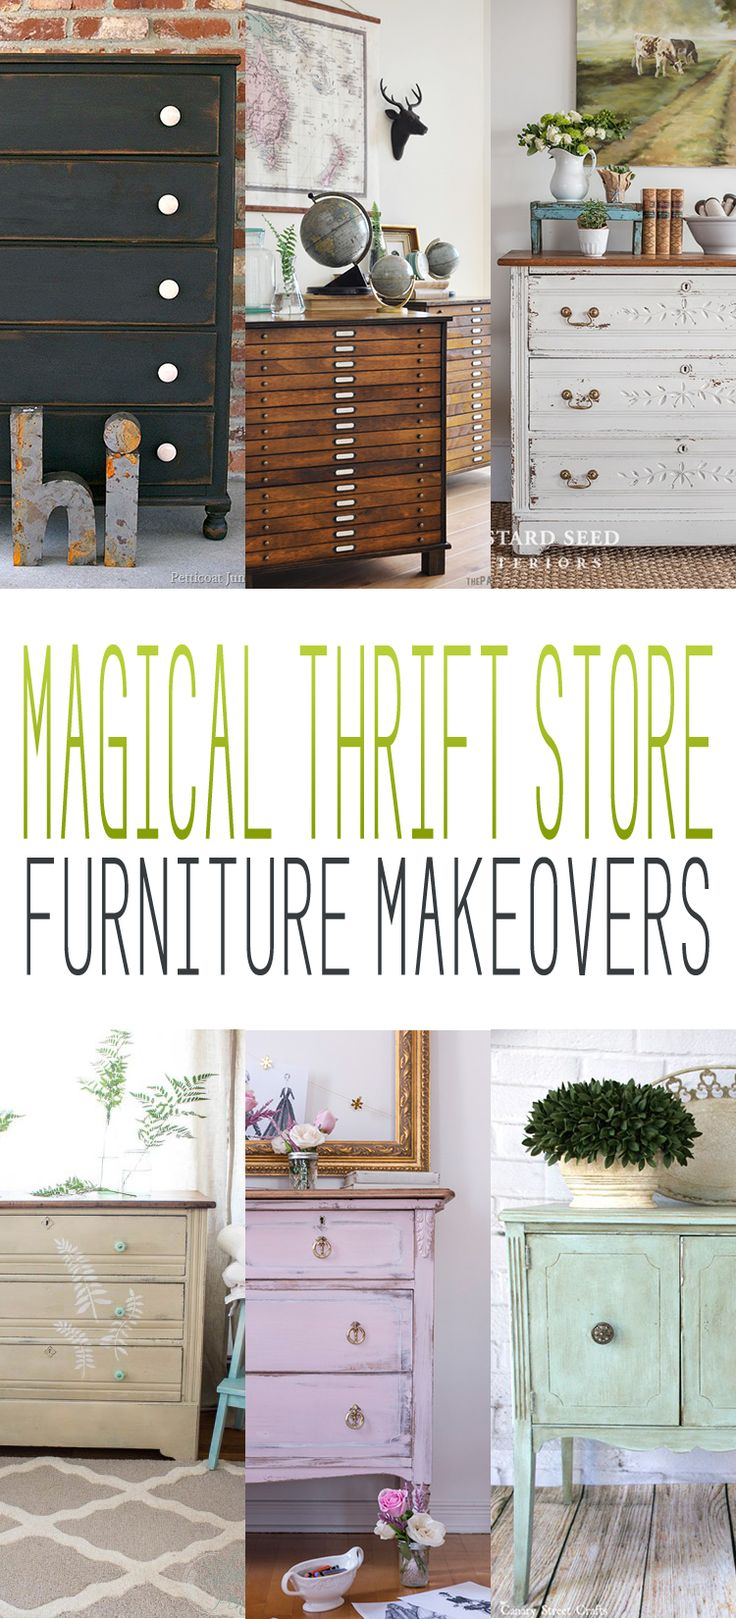 Magical Thrift Store Furniture Makeovers